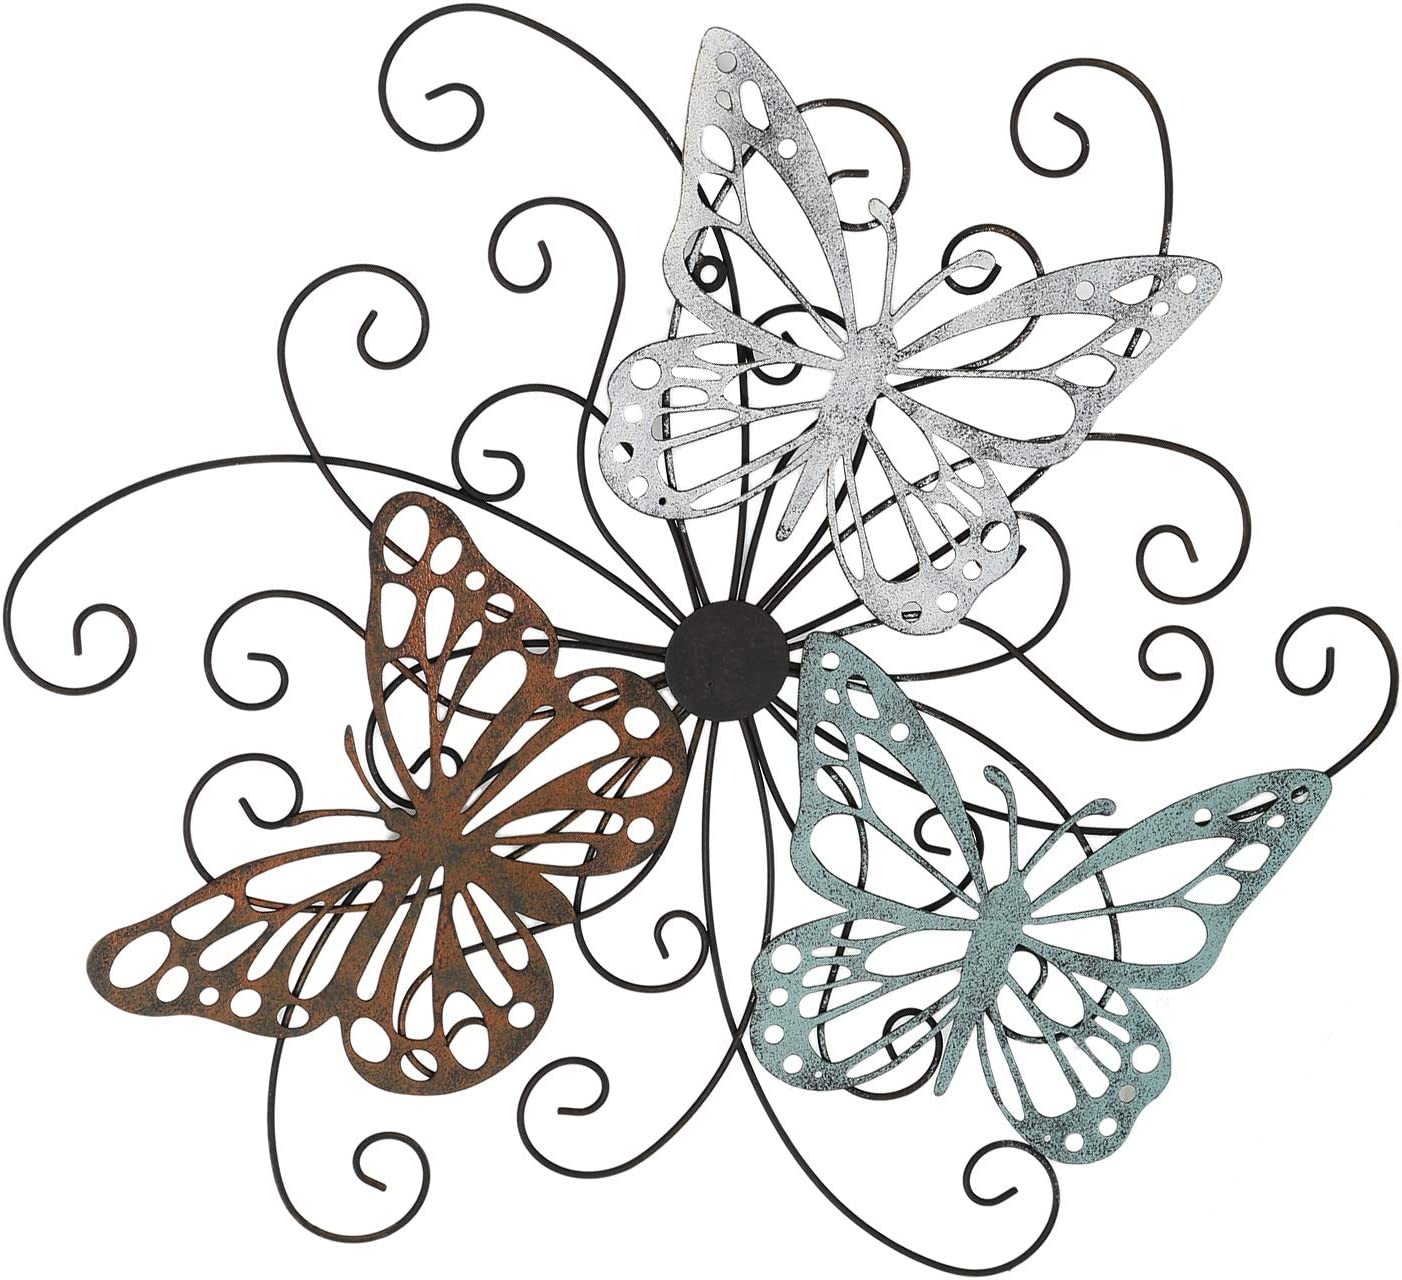 "Adeco Flower and Butterfly Urban Design Decorative Scrolled Metal Wall Decor for Nature Home Art Decoration & Kitchen Gifts, 19.5""x18"" Inches"